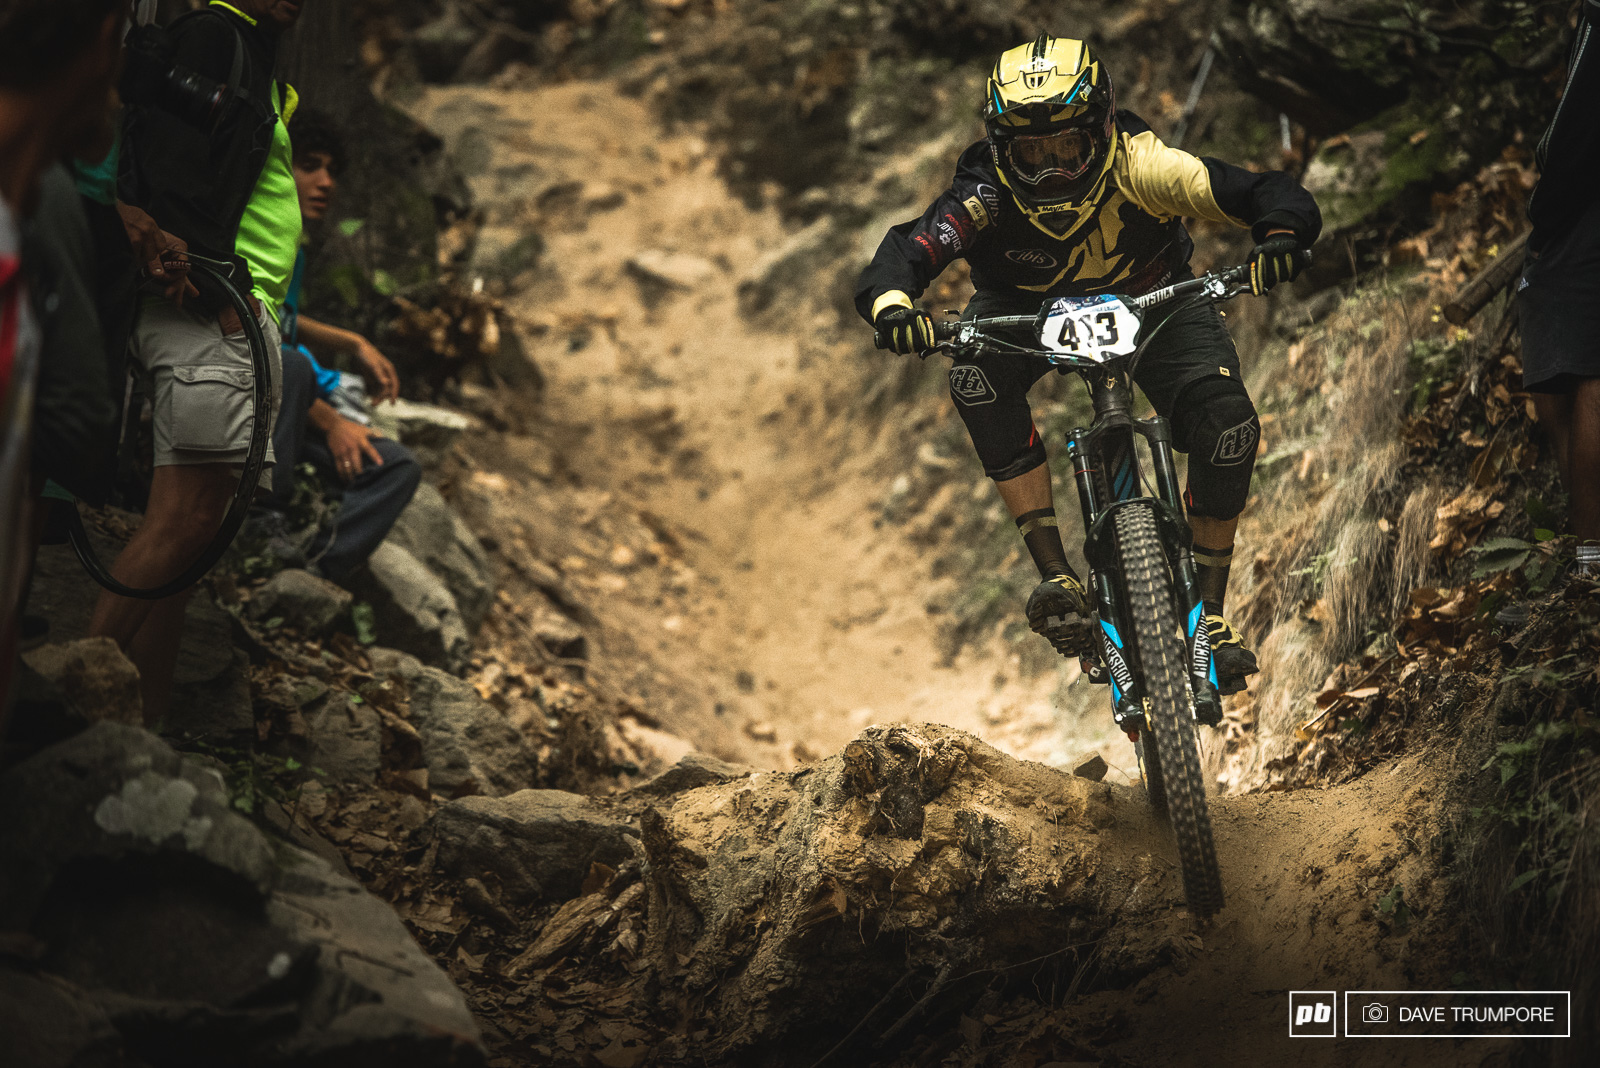 Anne Caroline Chausson is racing her final EWS race this weekend and is sitting in 3rd going into the final day.